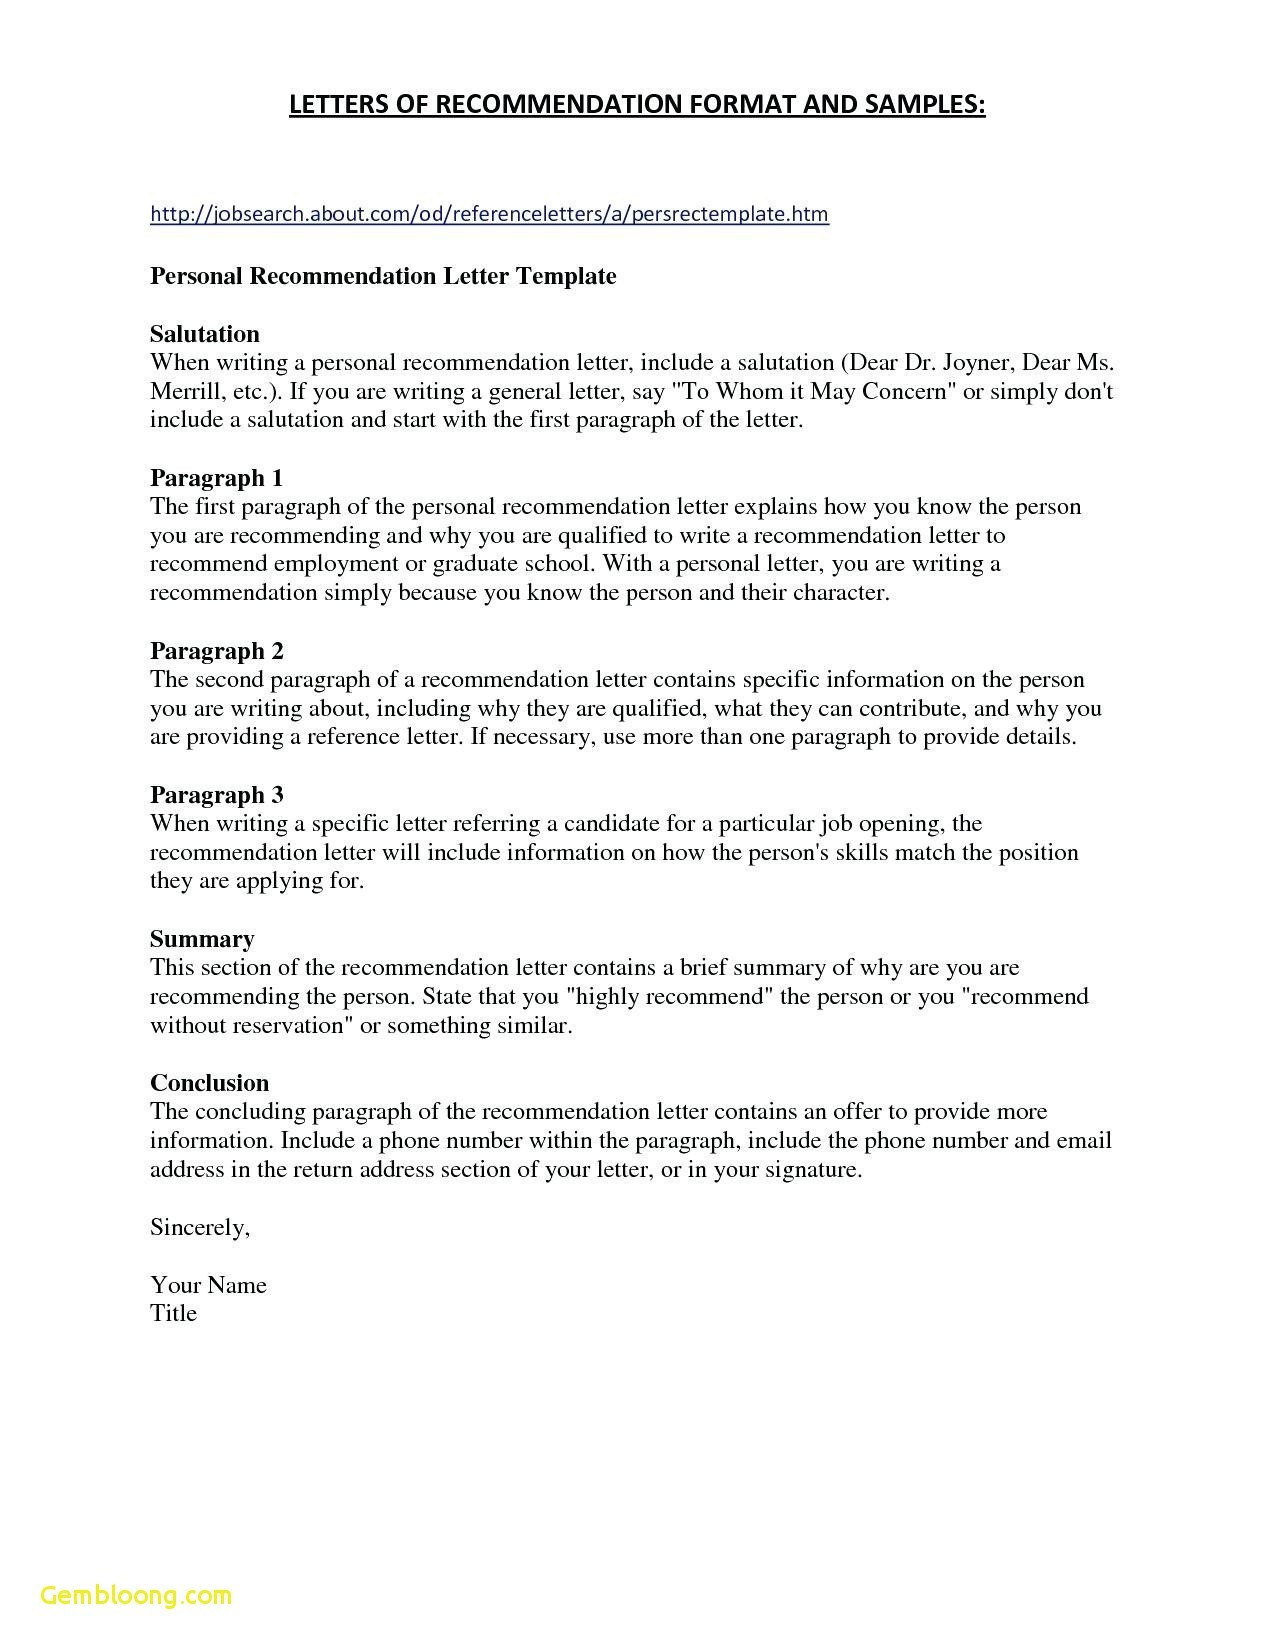 Email Template for Letter Of Recommendation - Business Letter Re Mendation Template Valid Reference Letter